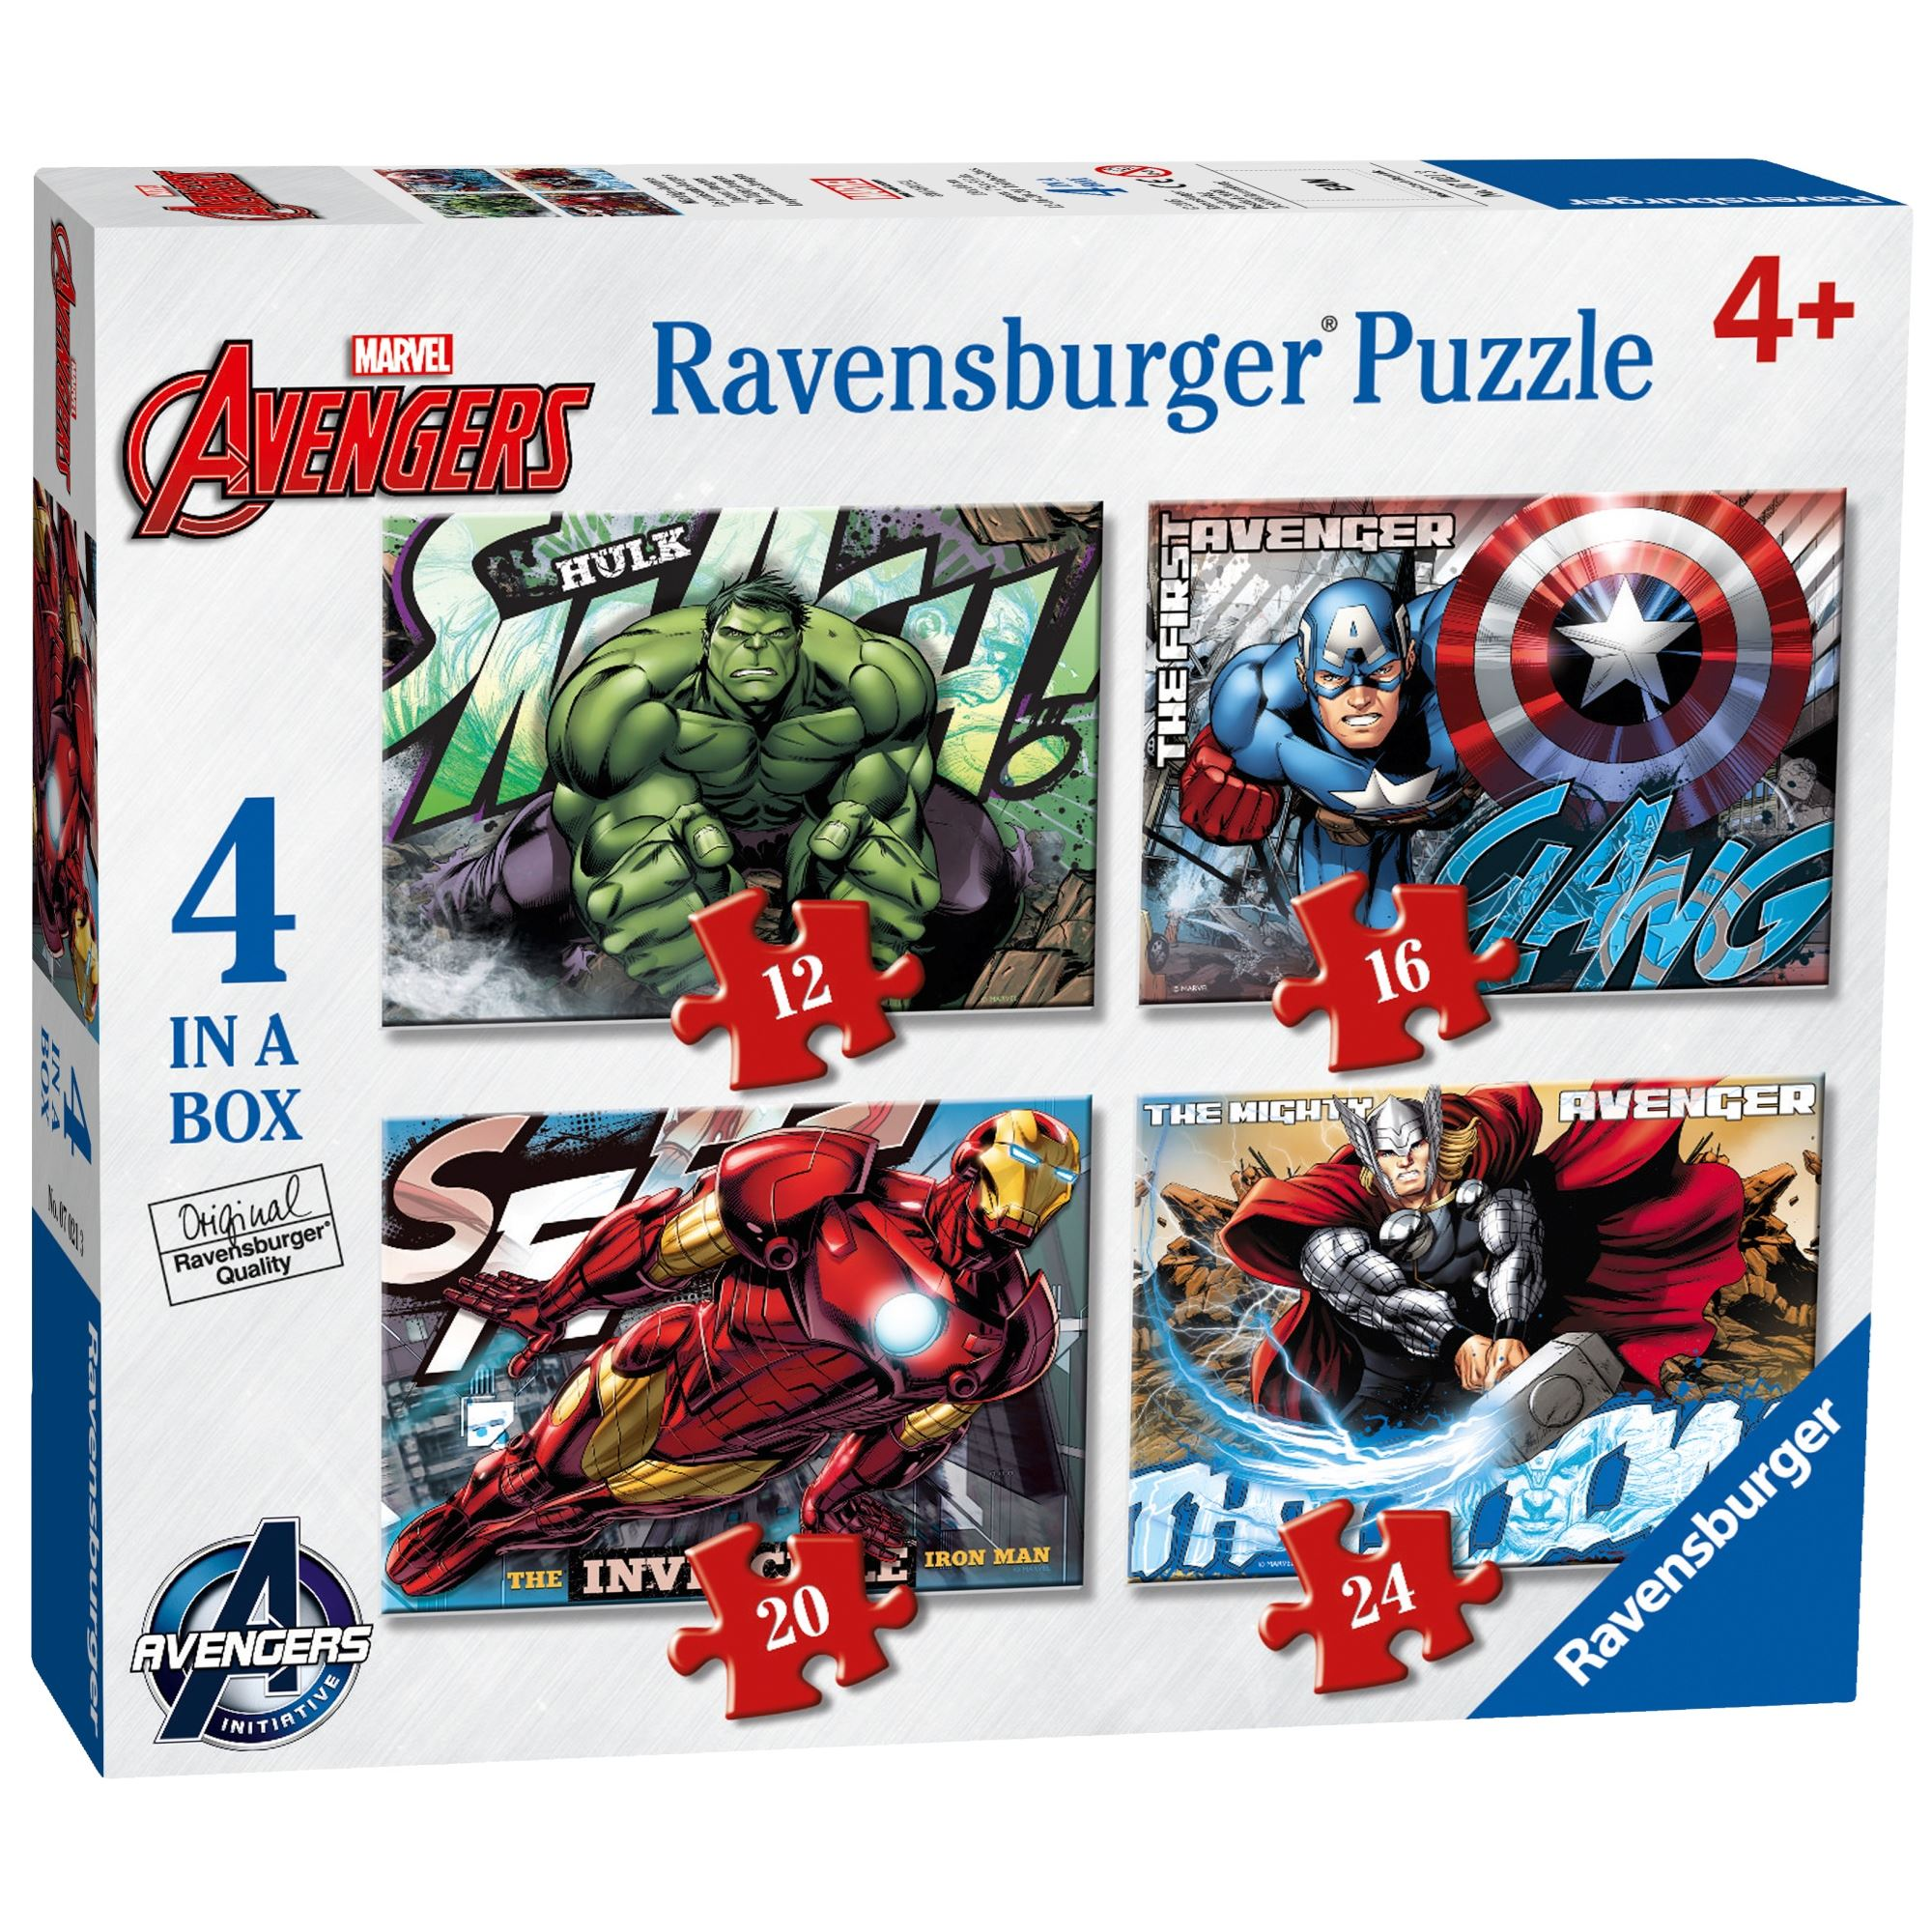 Ravensburger Marvel Avengers Assemble 4 in a Box Jigsaw